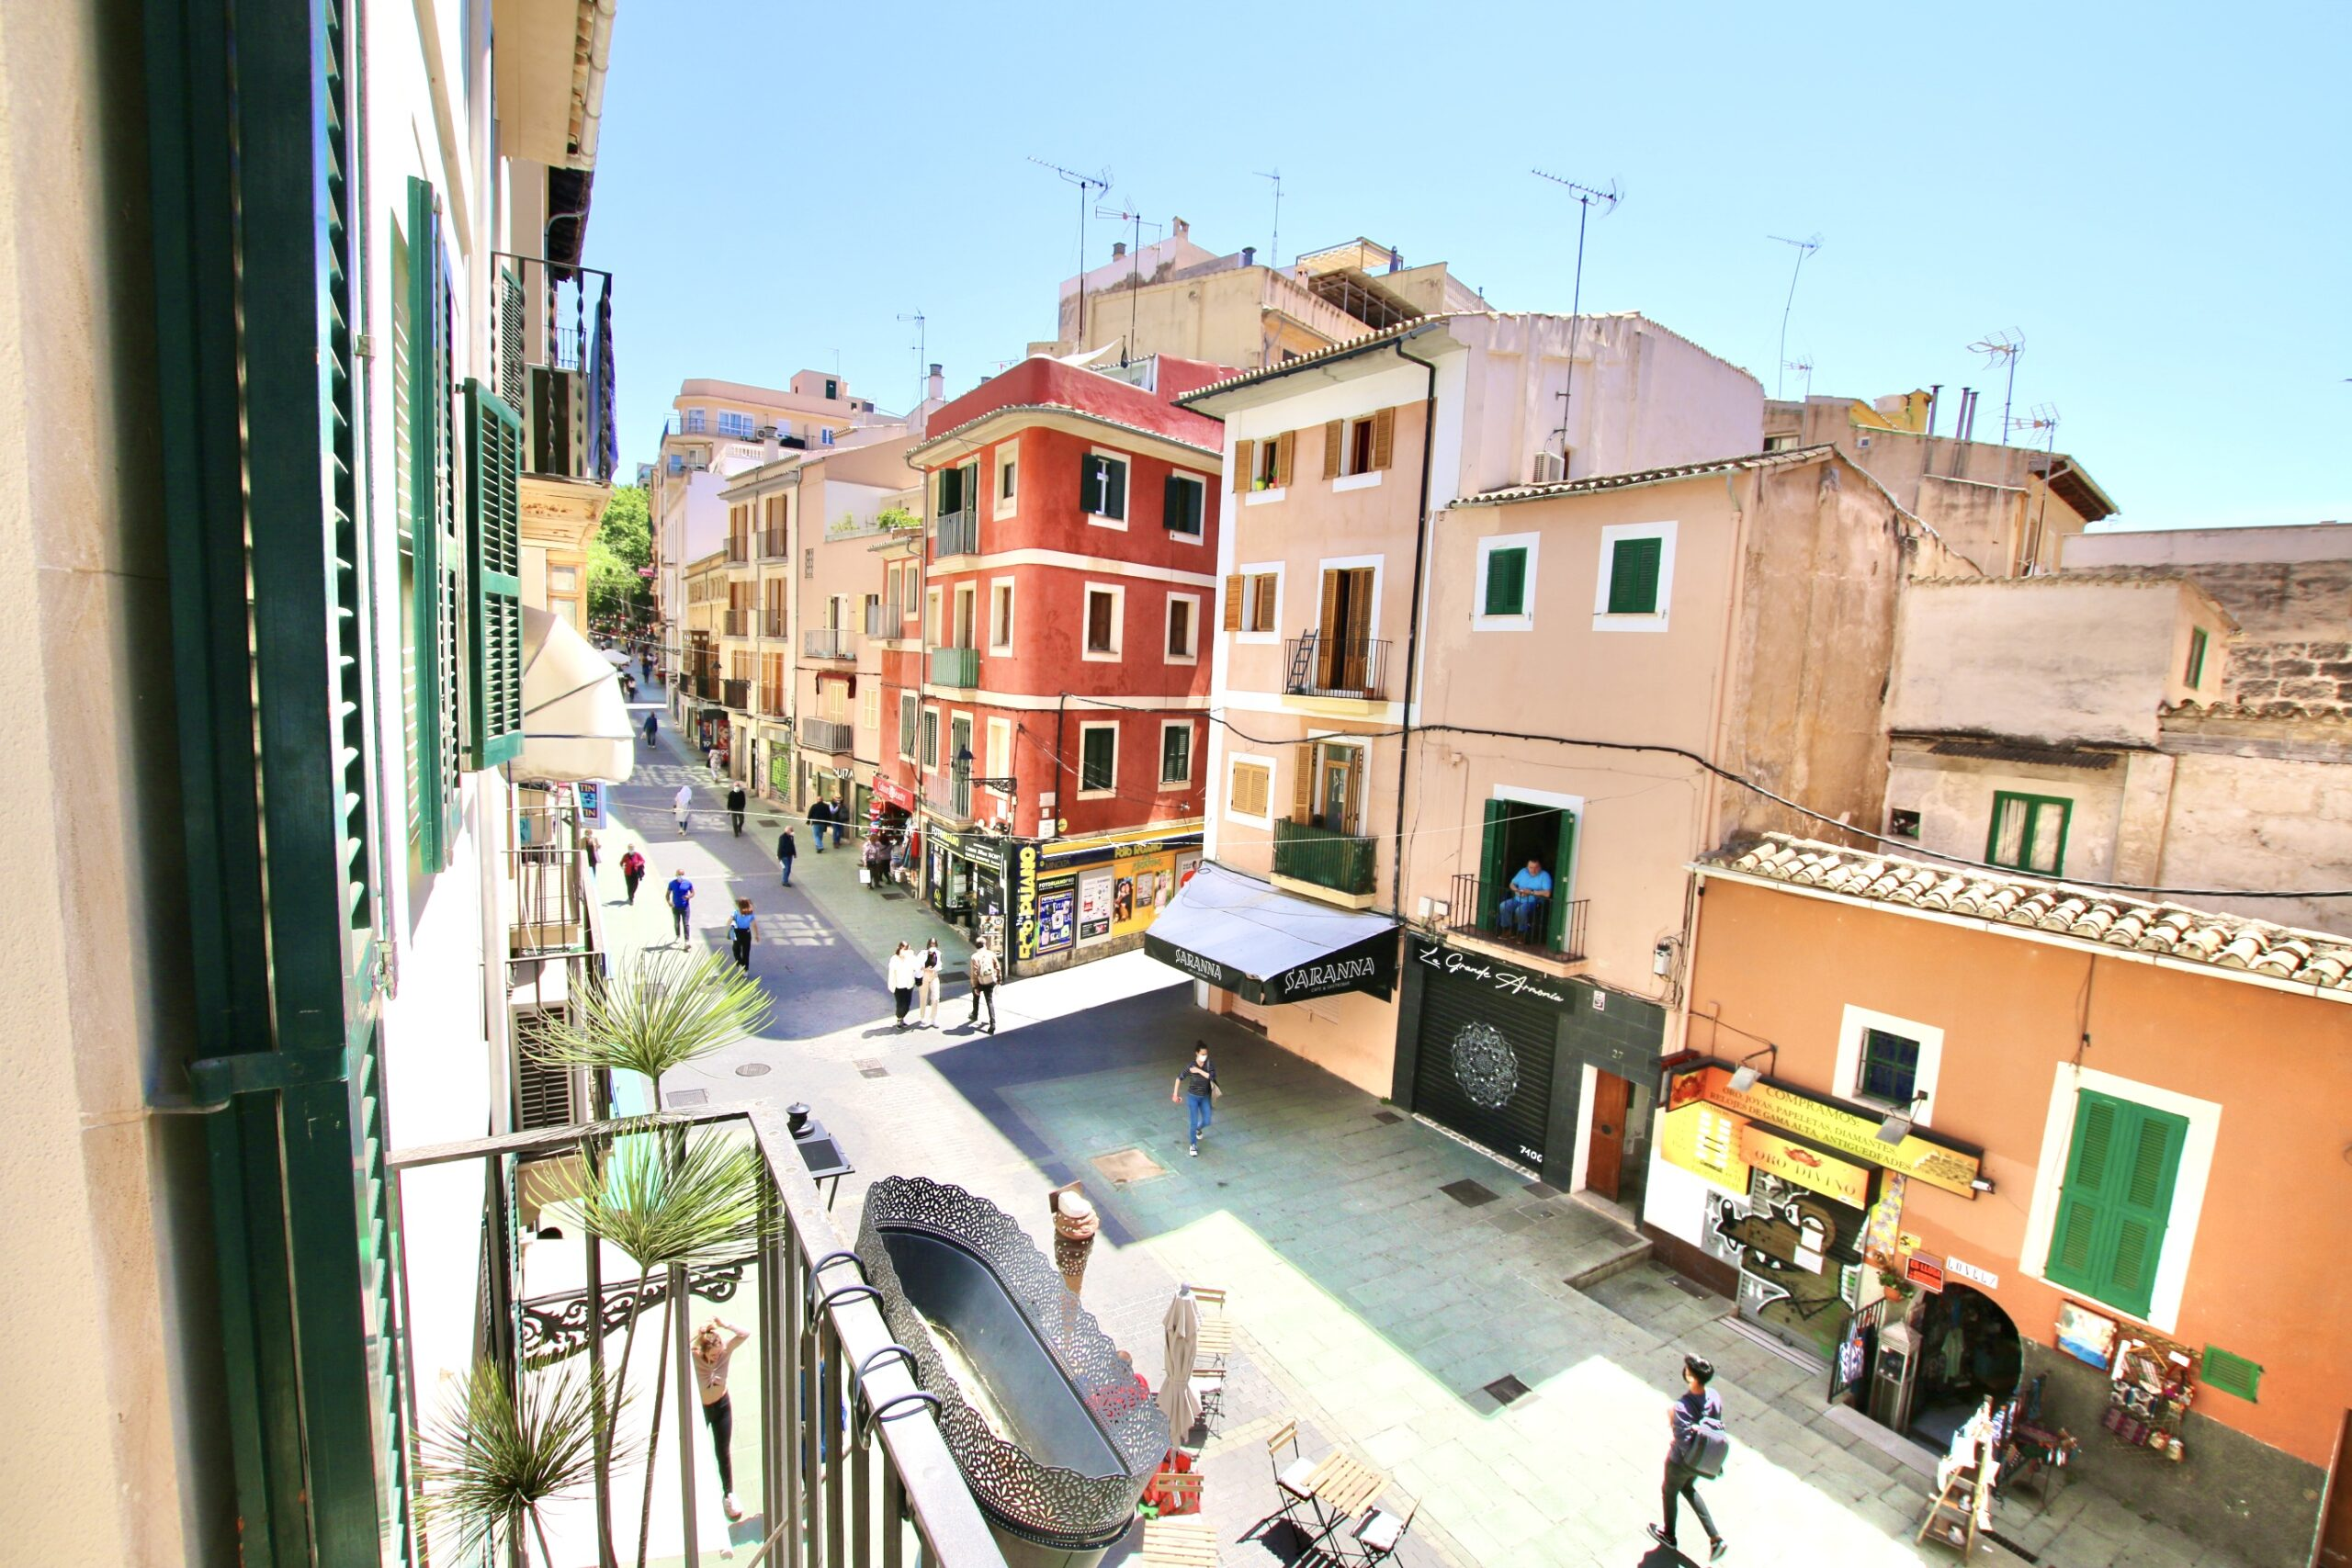 Exclusive and renovated 3 bedrooms apartment in the heart of the old town @ Palma